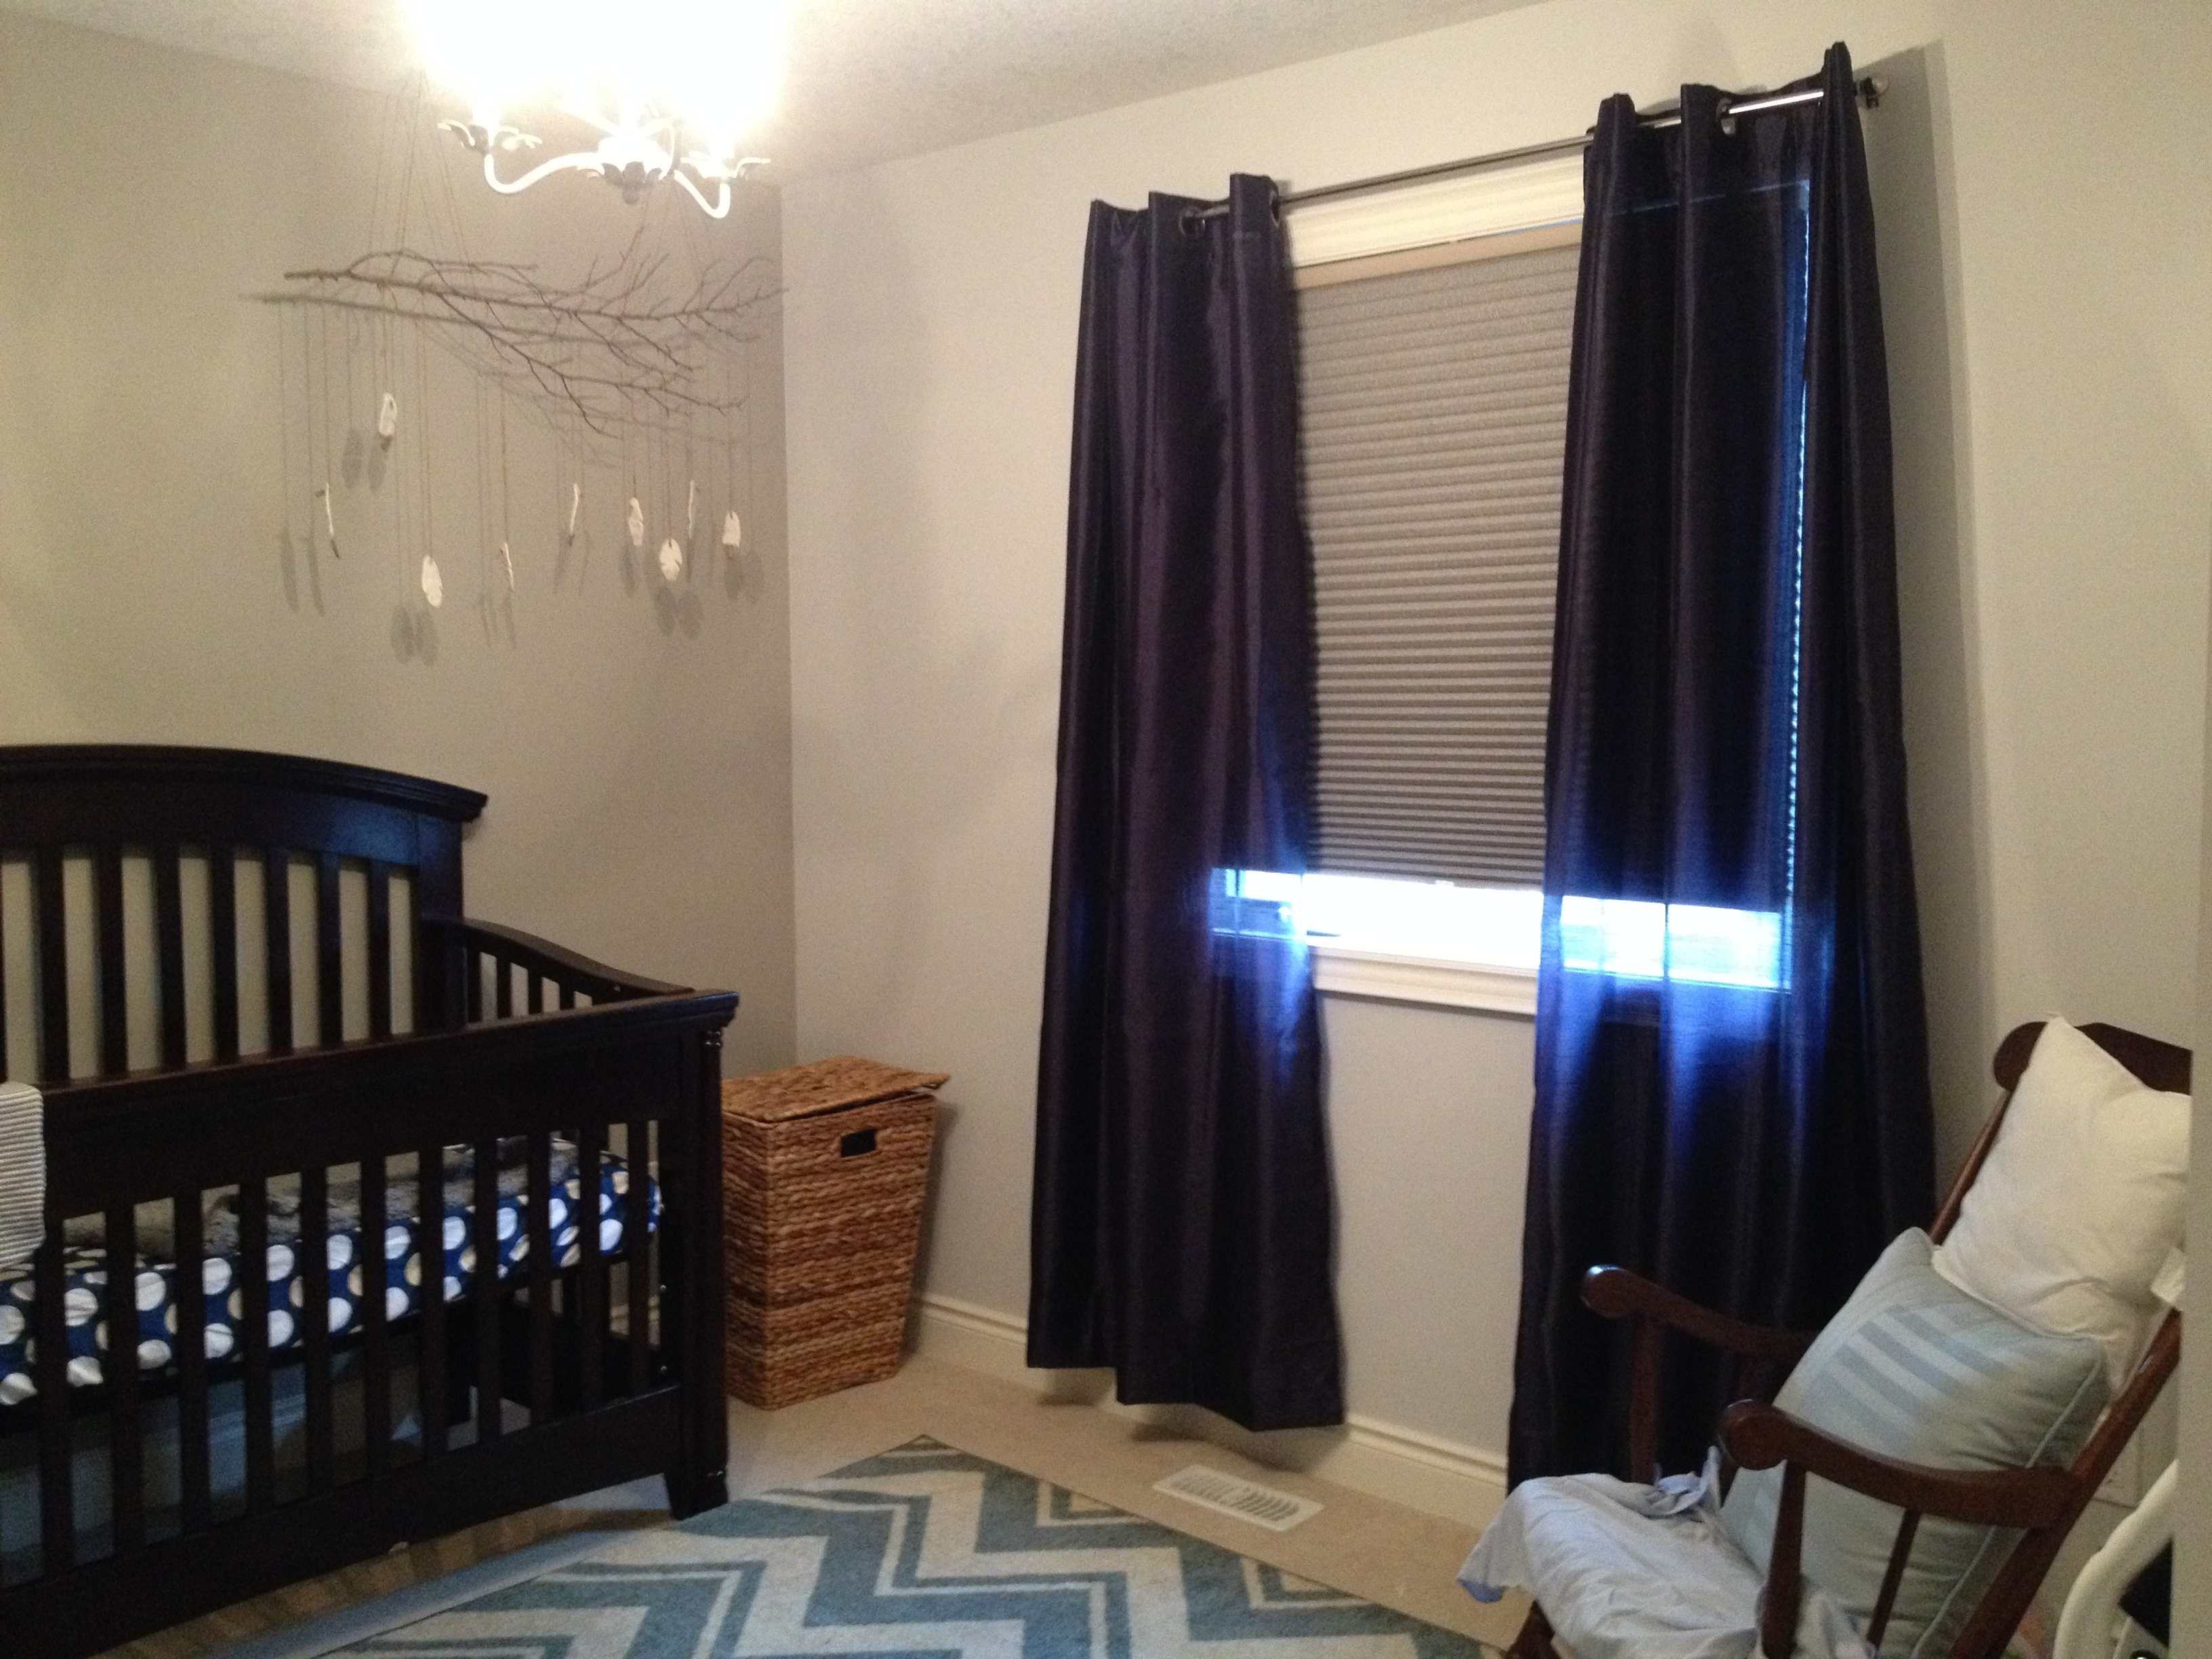 Nursery Enchanting Nursery Decorating Ideas With Blackout Throughout Blackout Curtains For Baby Room (Image 23 of 25)